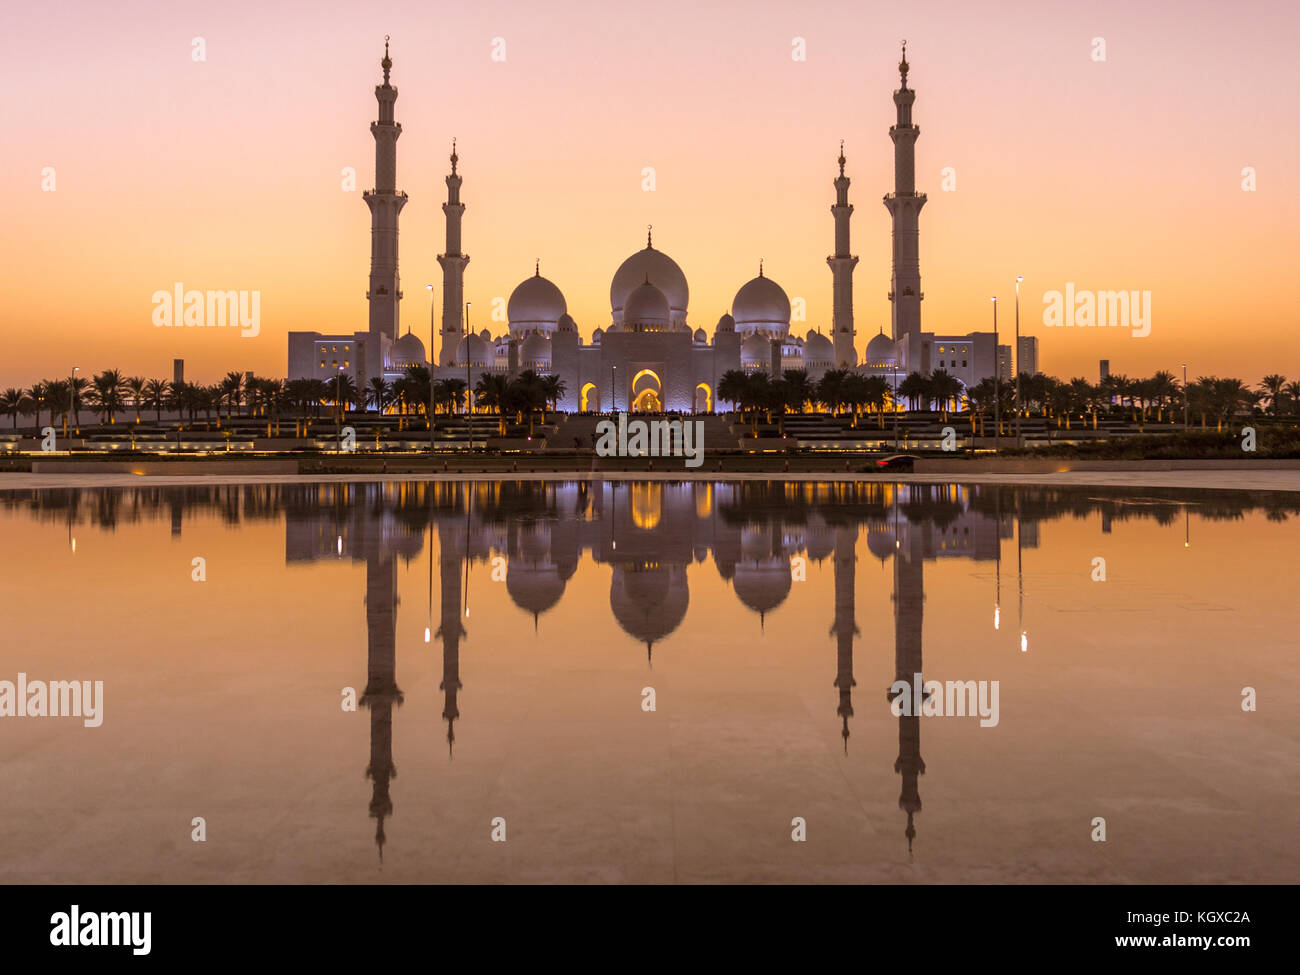 Sheik Zayed Grand Mosque in Abu Dhabi after sunset - Stock Image